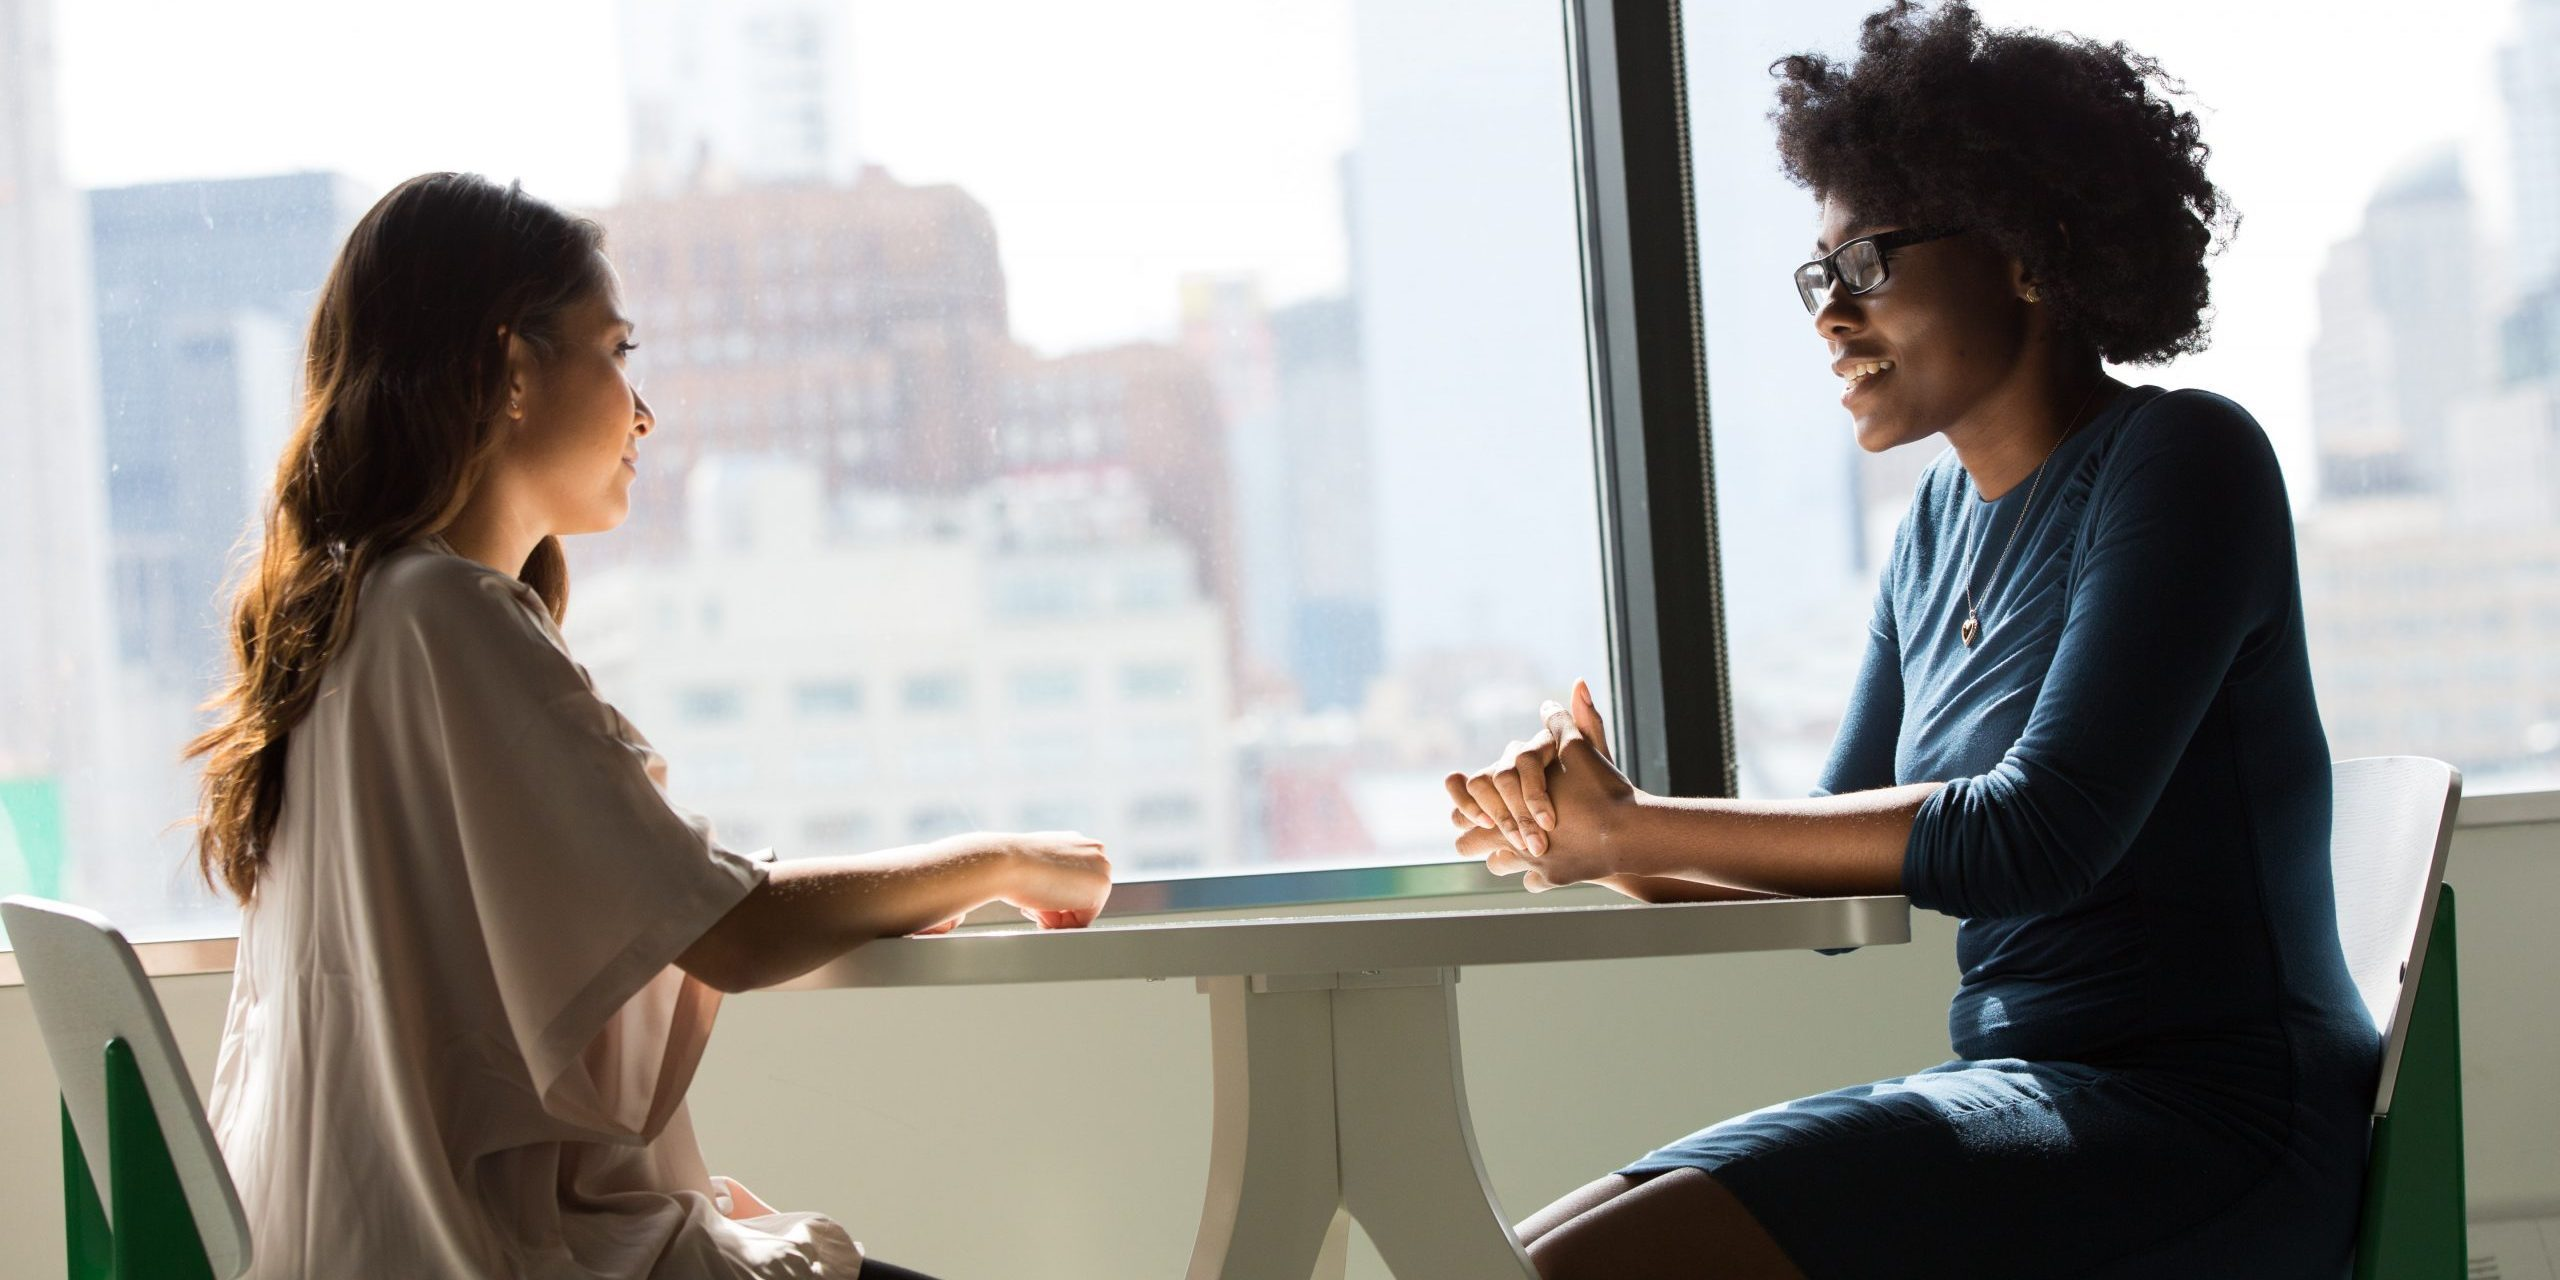 two women at a table talking about web design